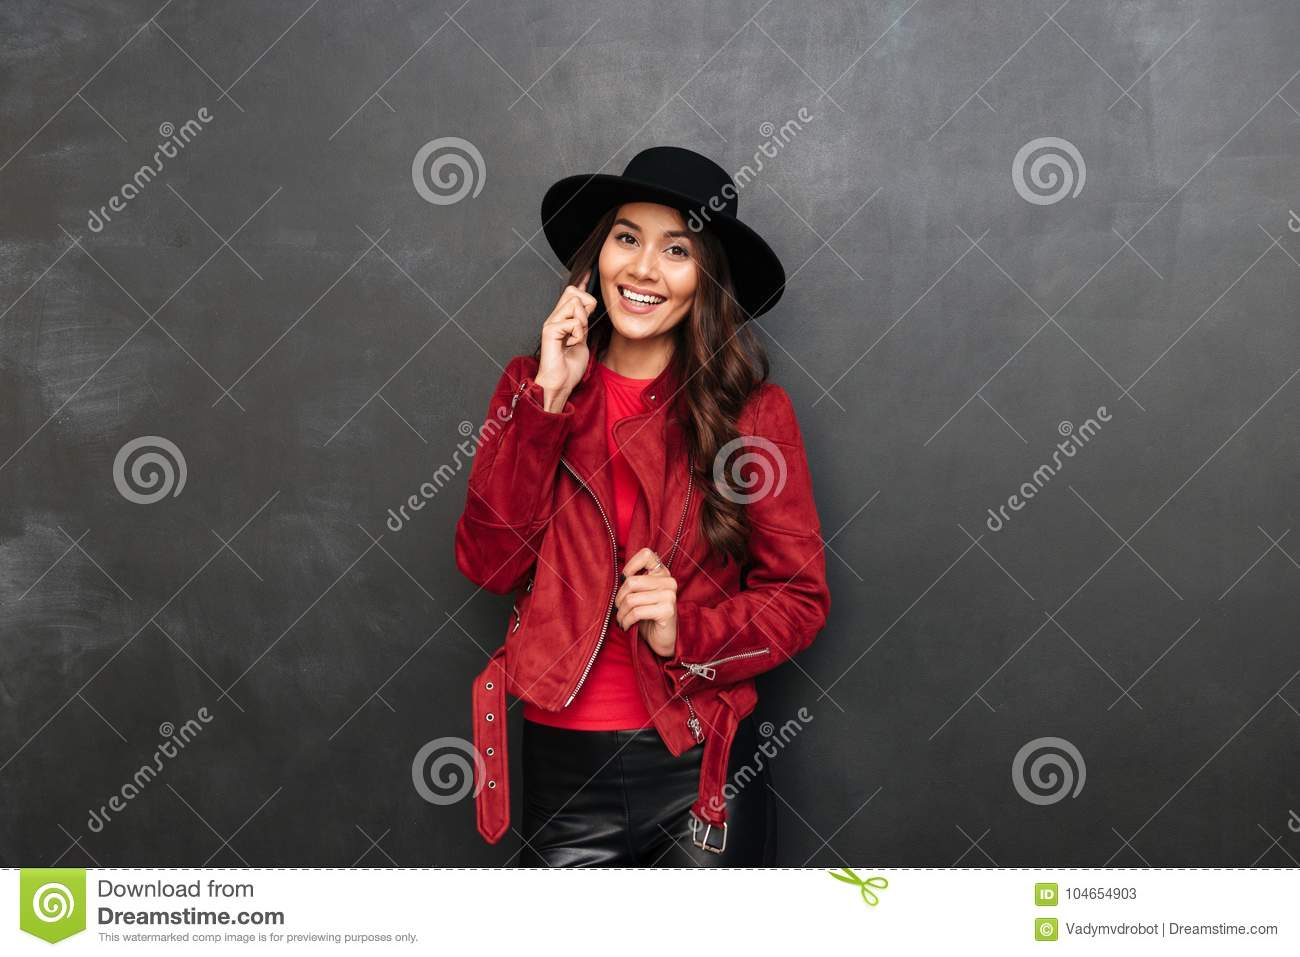 9d62c3f8c4ba8 Photo of cheerful young woman wearing hat standing over dark grey wall  chalkboard talking by mobile phone. Looking camera.